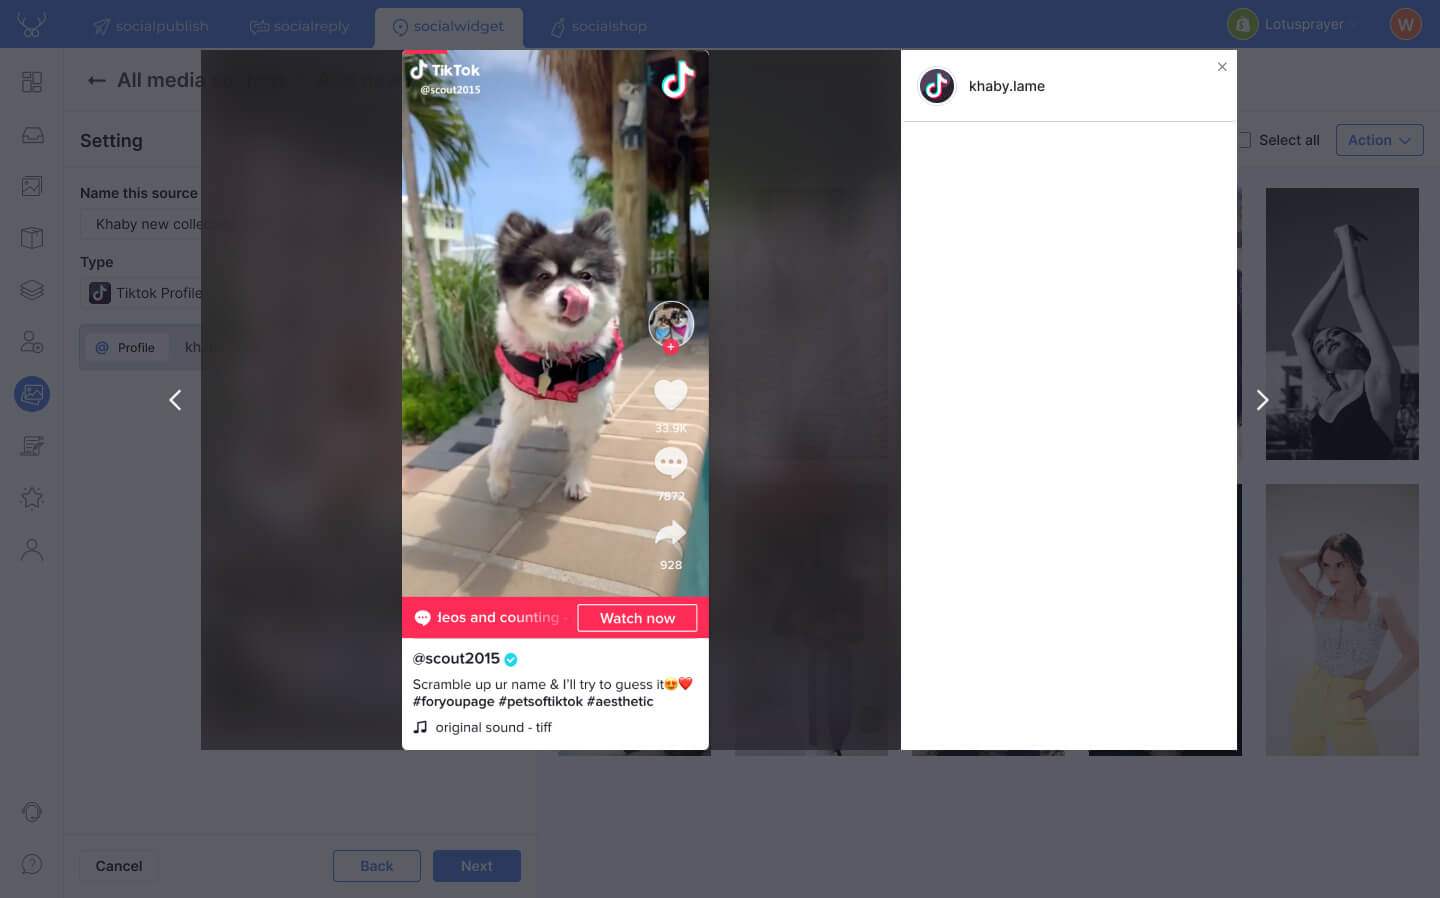 Your TikTok videos are imported to Socialwidget as media items